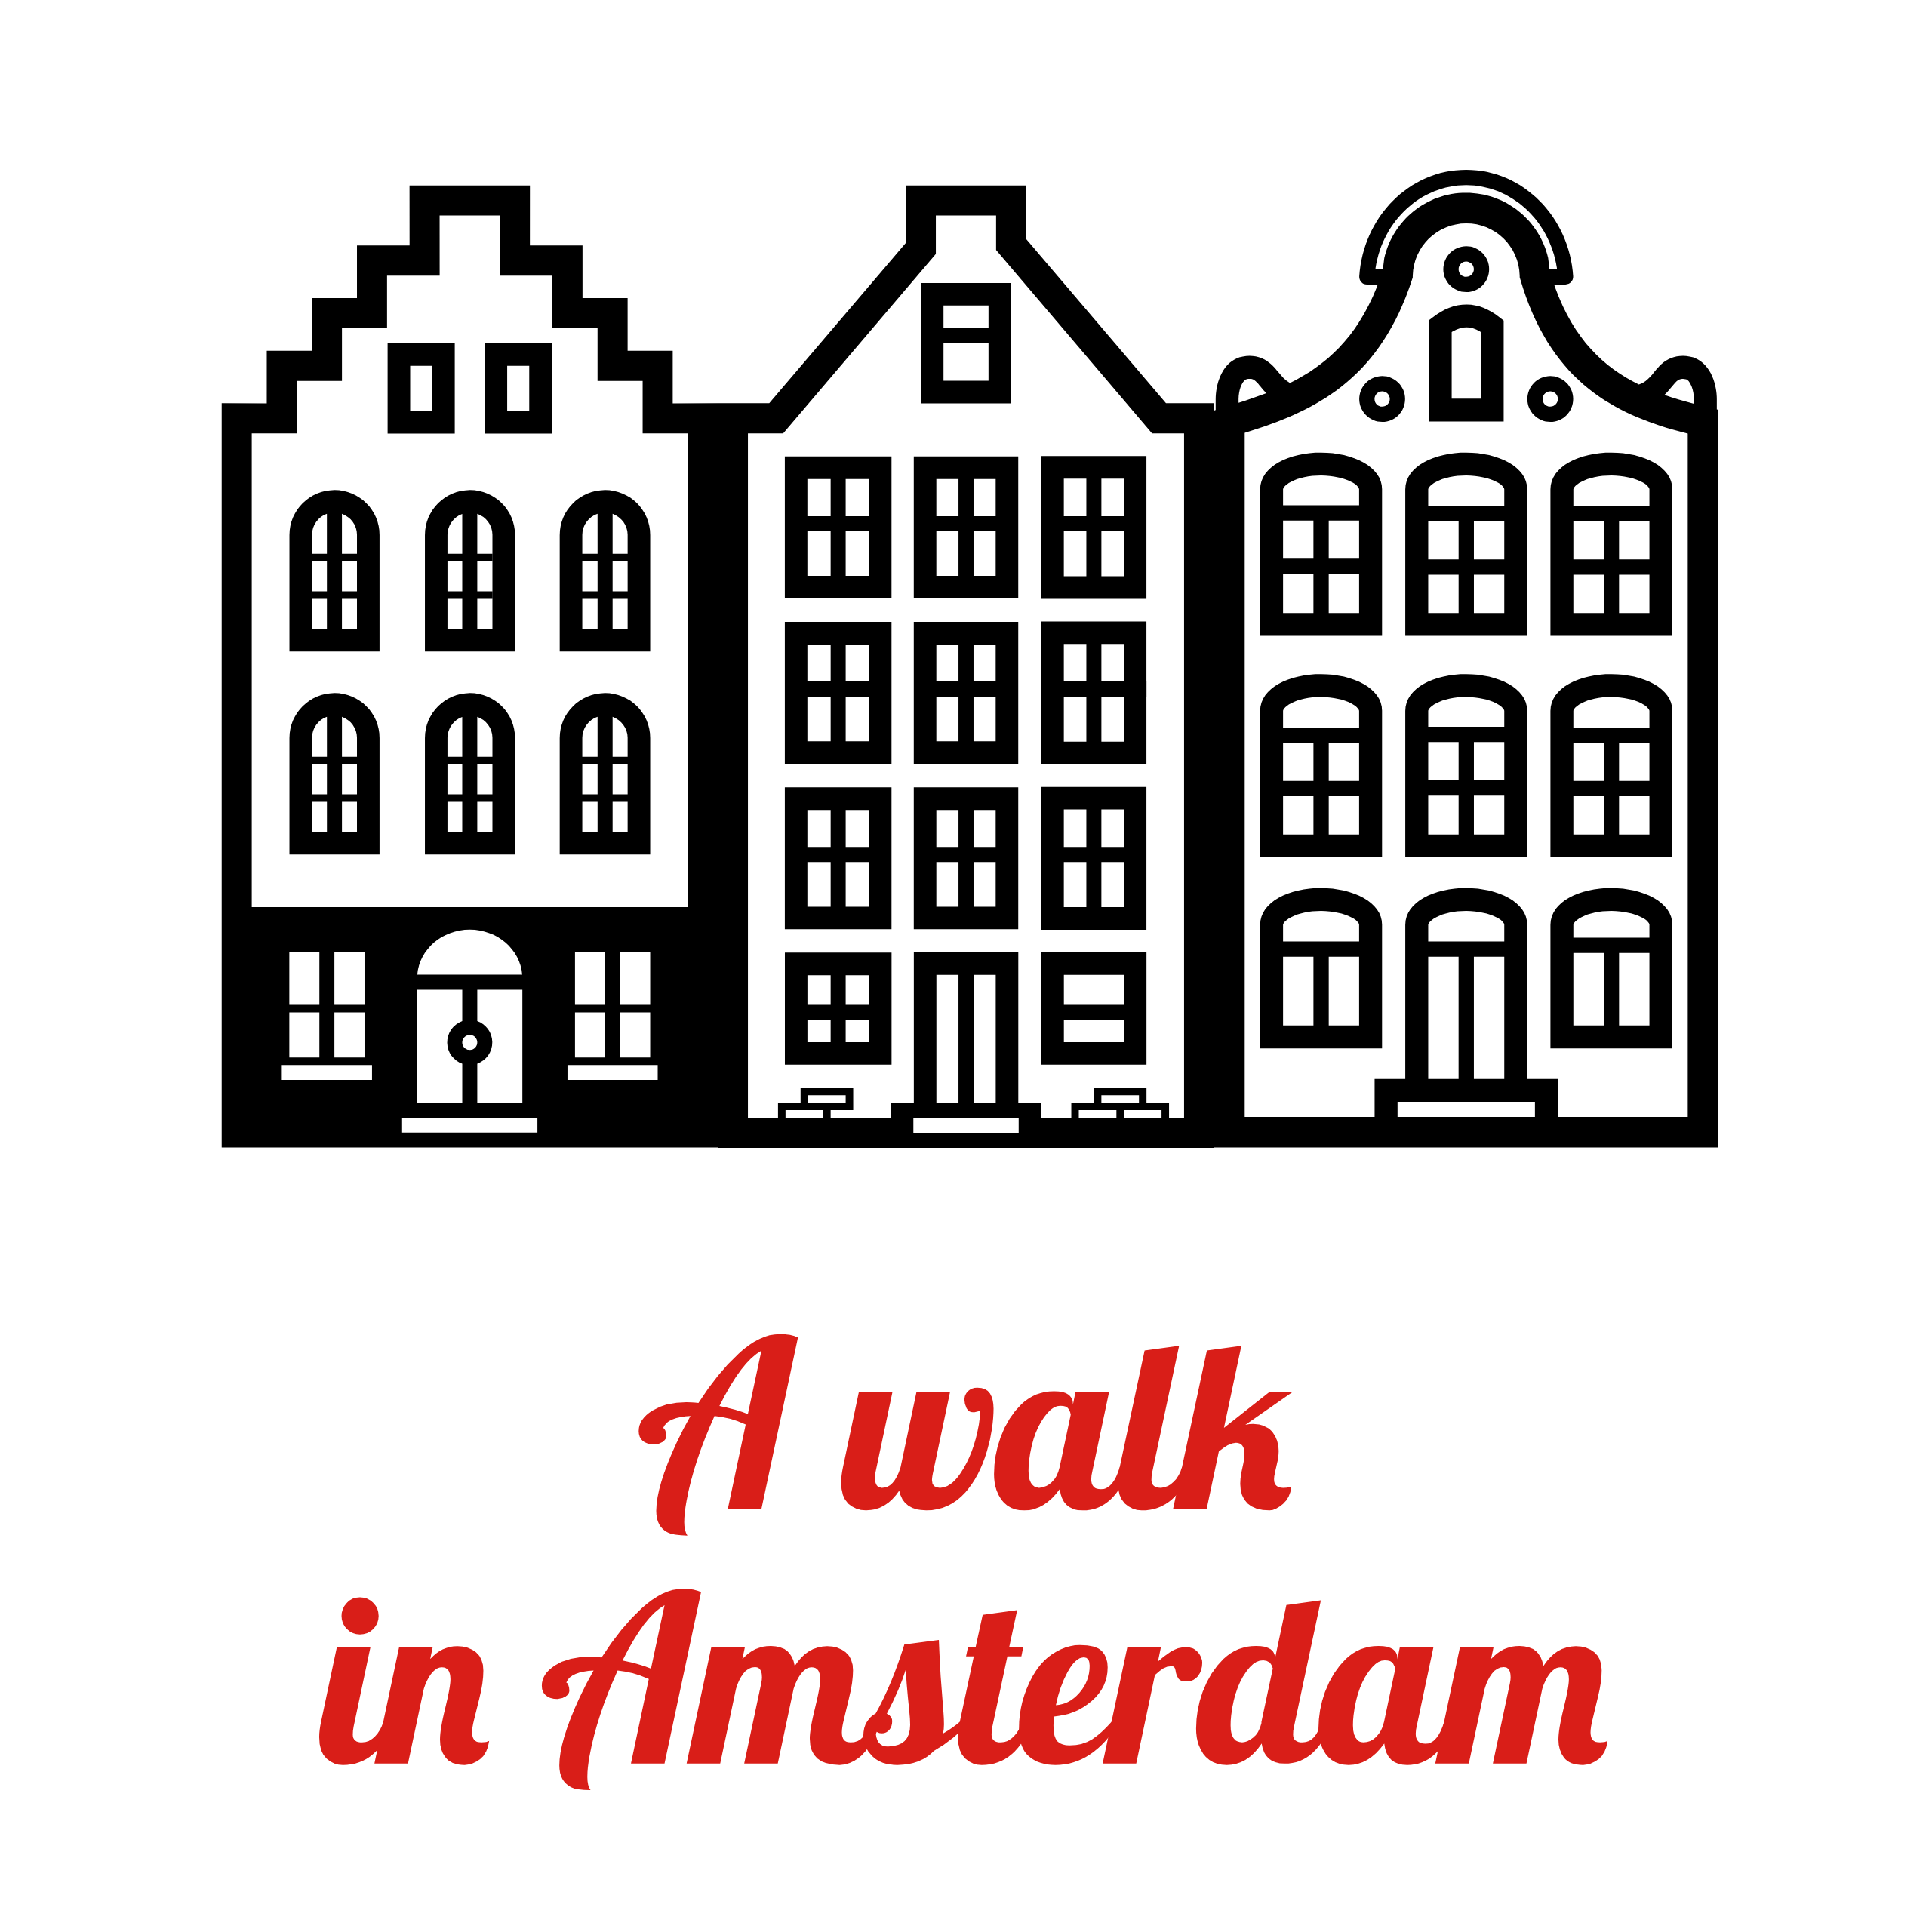 A walk in Amsterdam